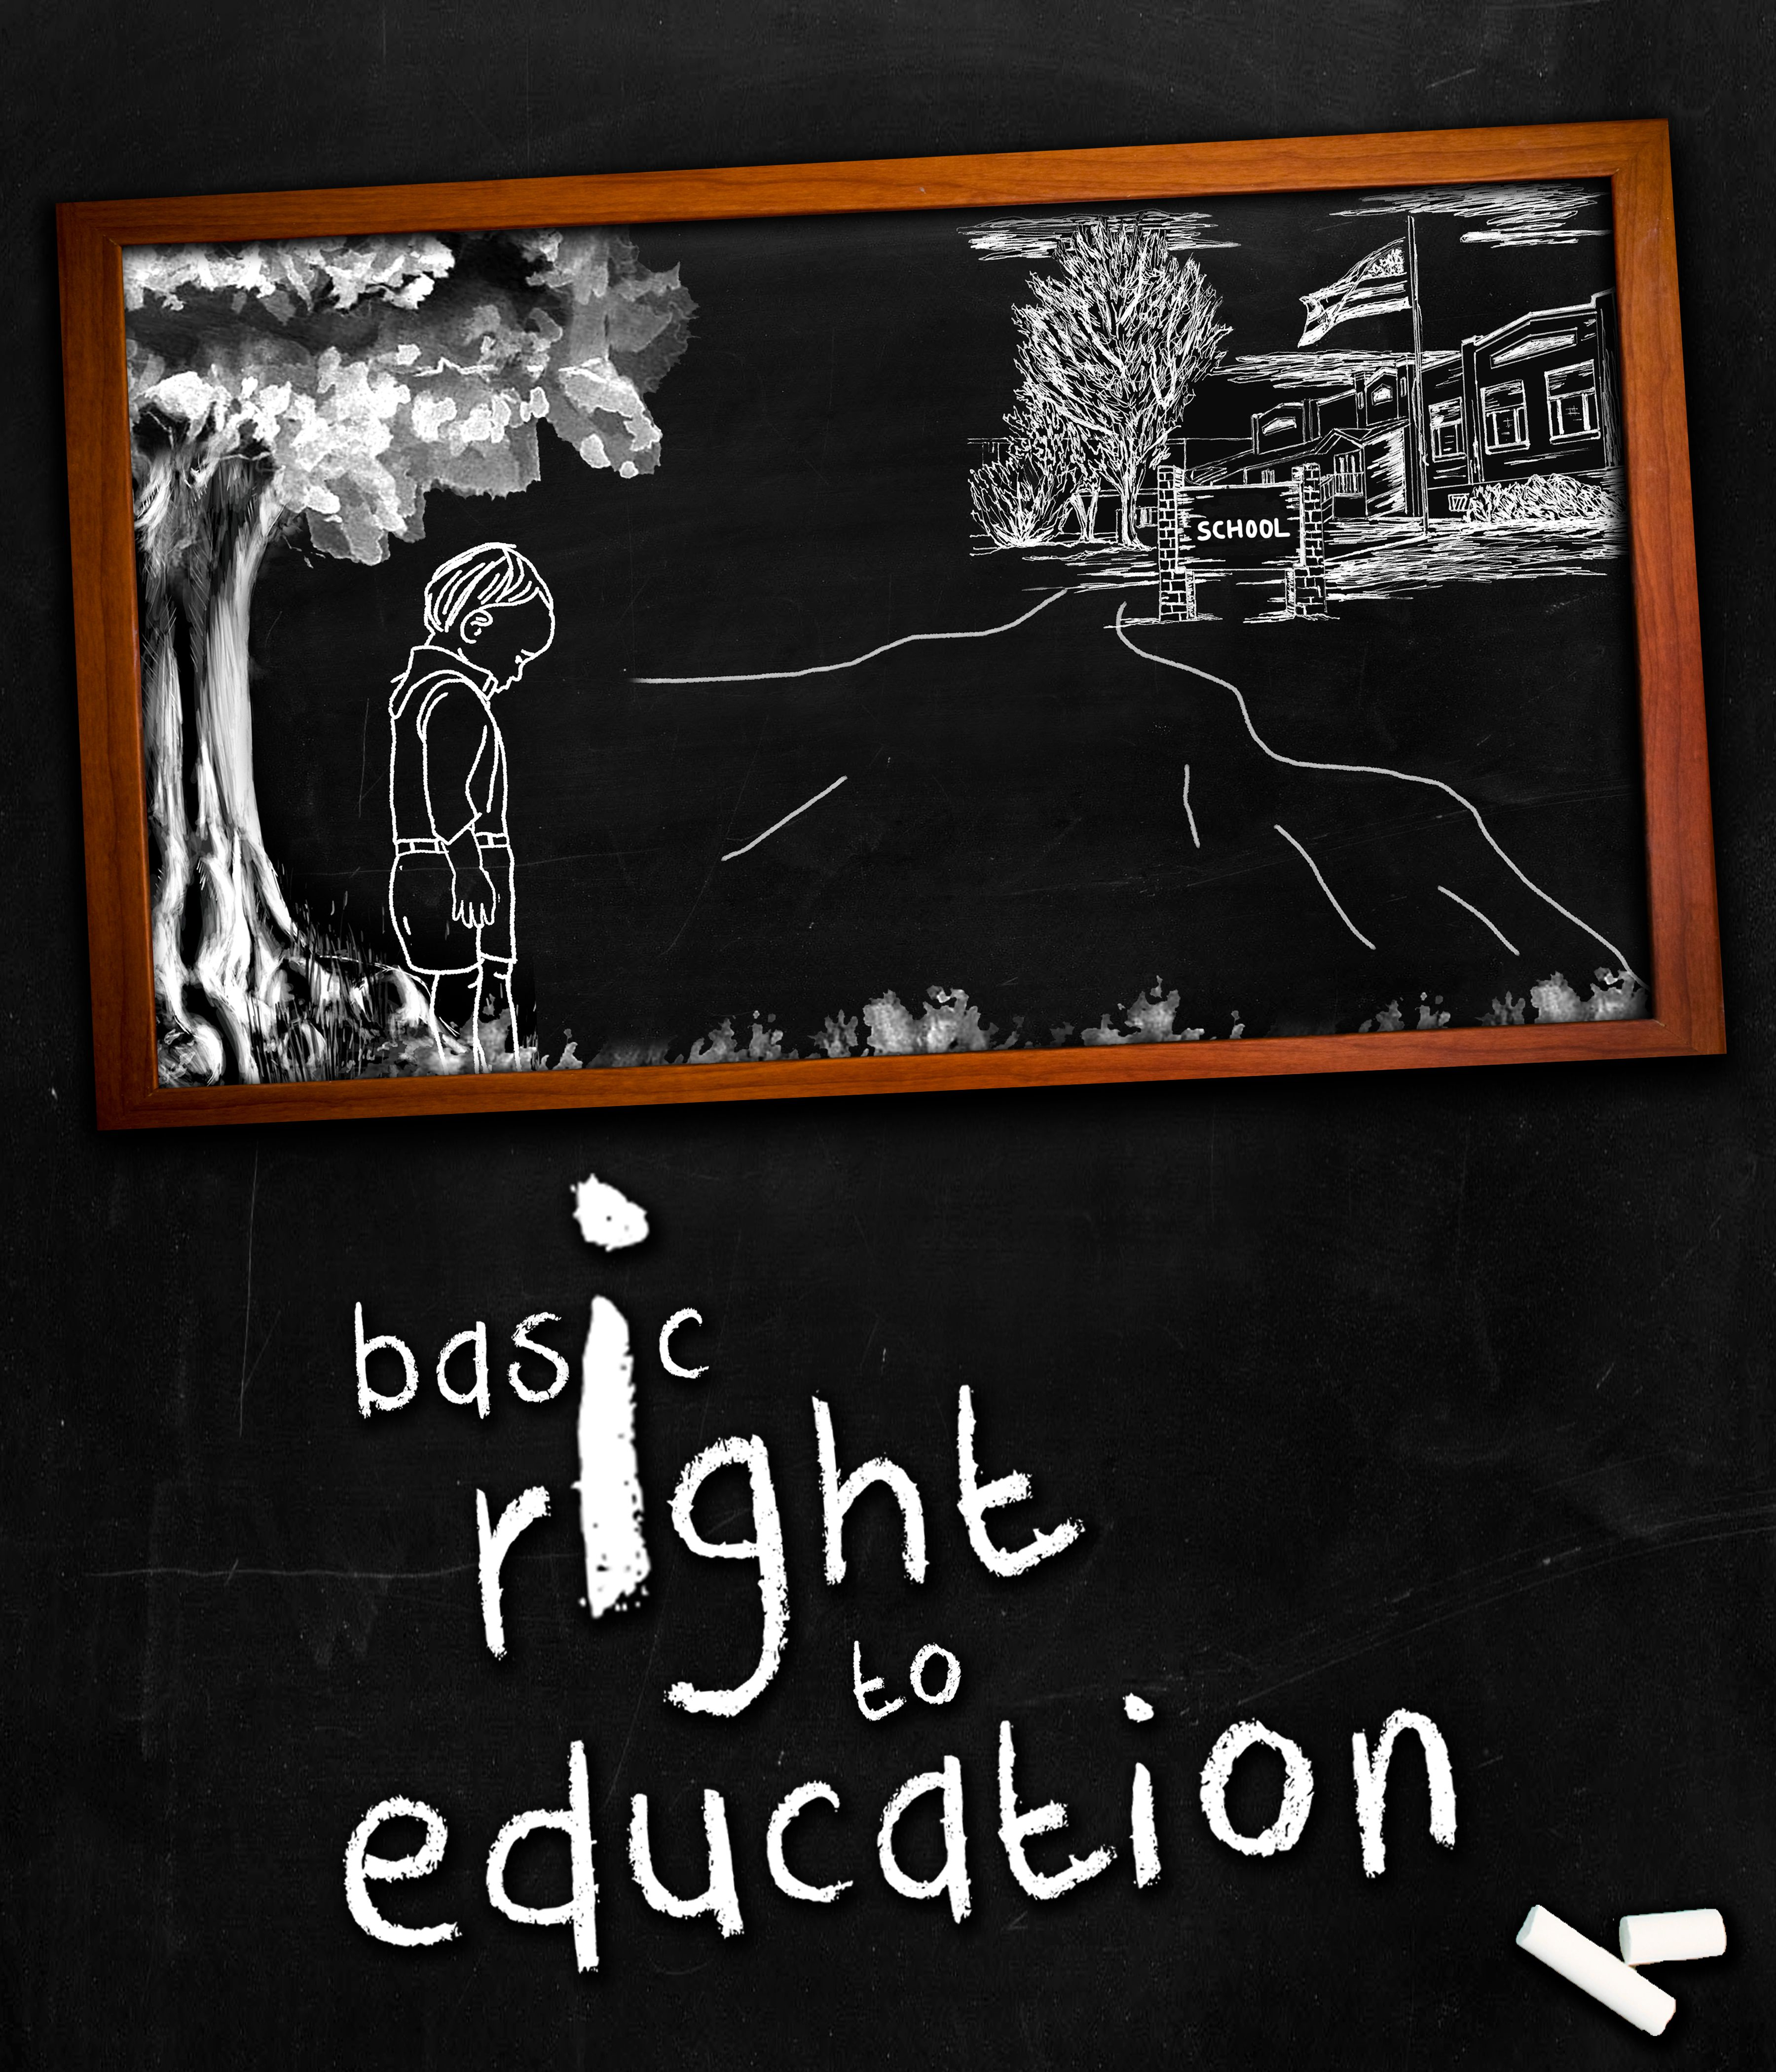 Photoshop poster design youtube - Right To Education Short Film Poster Design